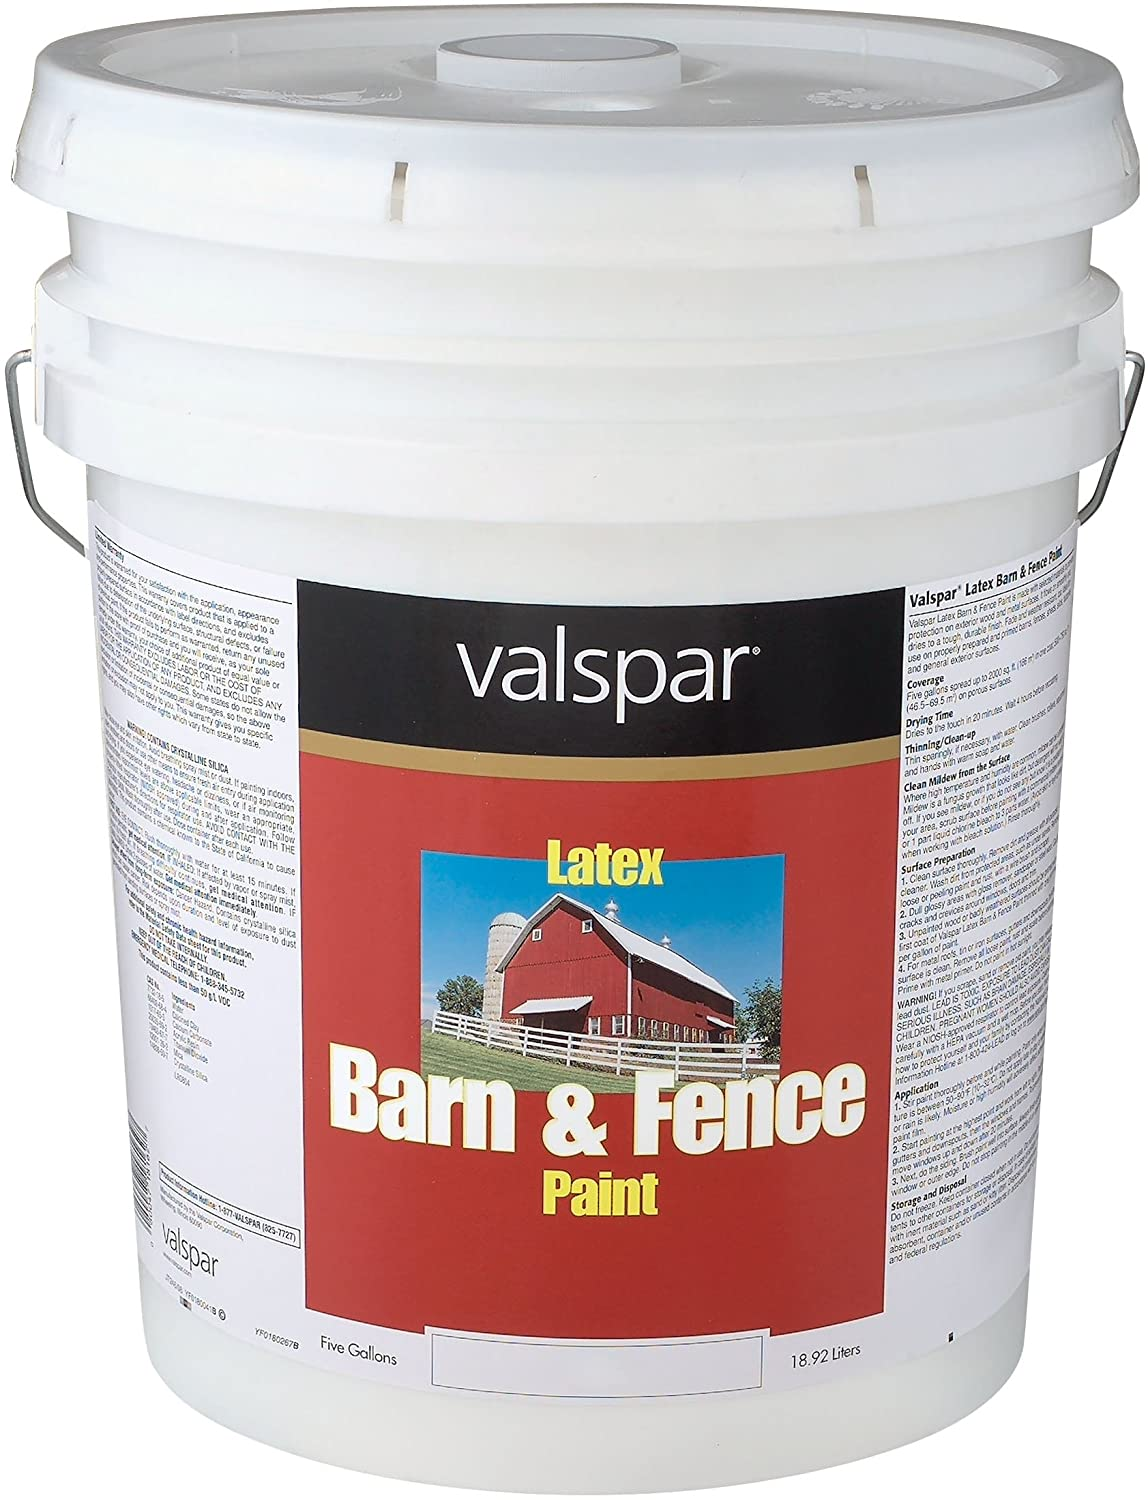 Exterior Paint Prices At Walmart Walmart Paint Prices 6 Walmart Glidden Paint Prices 1 Gallon